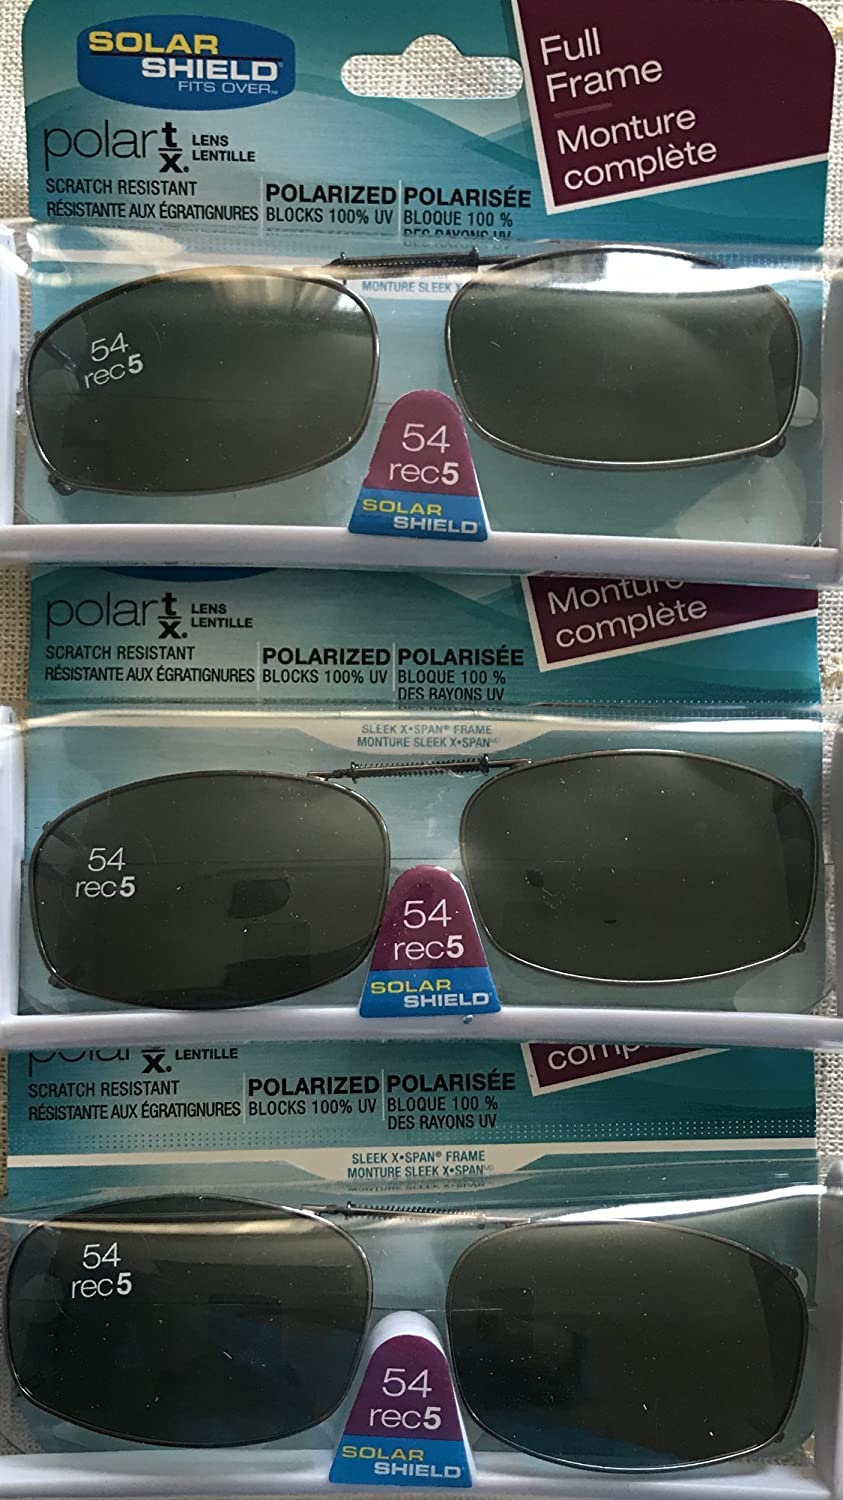 0c8f260a93d Amazon.com  3 SOLAR SHIELD Clip-on Polarized Sunglasses Size 54 rec 5 Black  Full Frame NEW  Sports   Outdoors